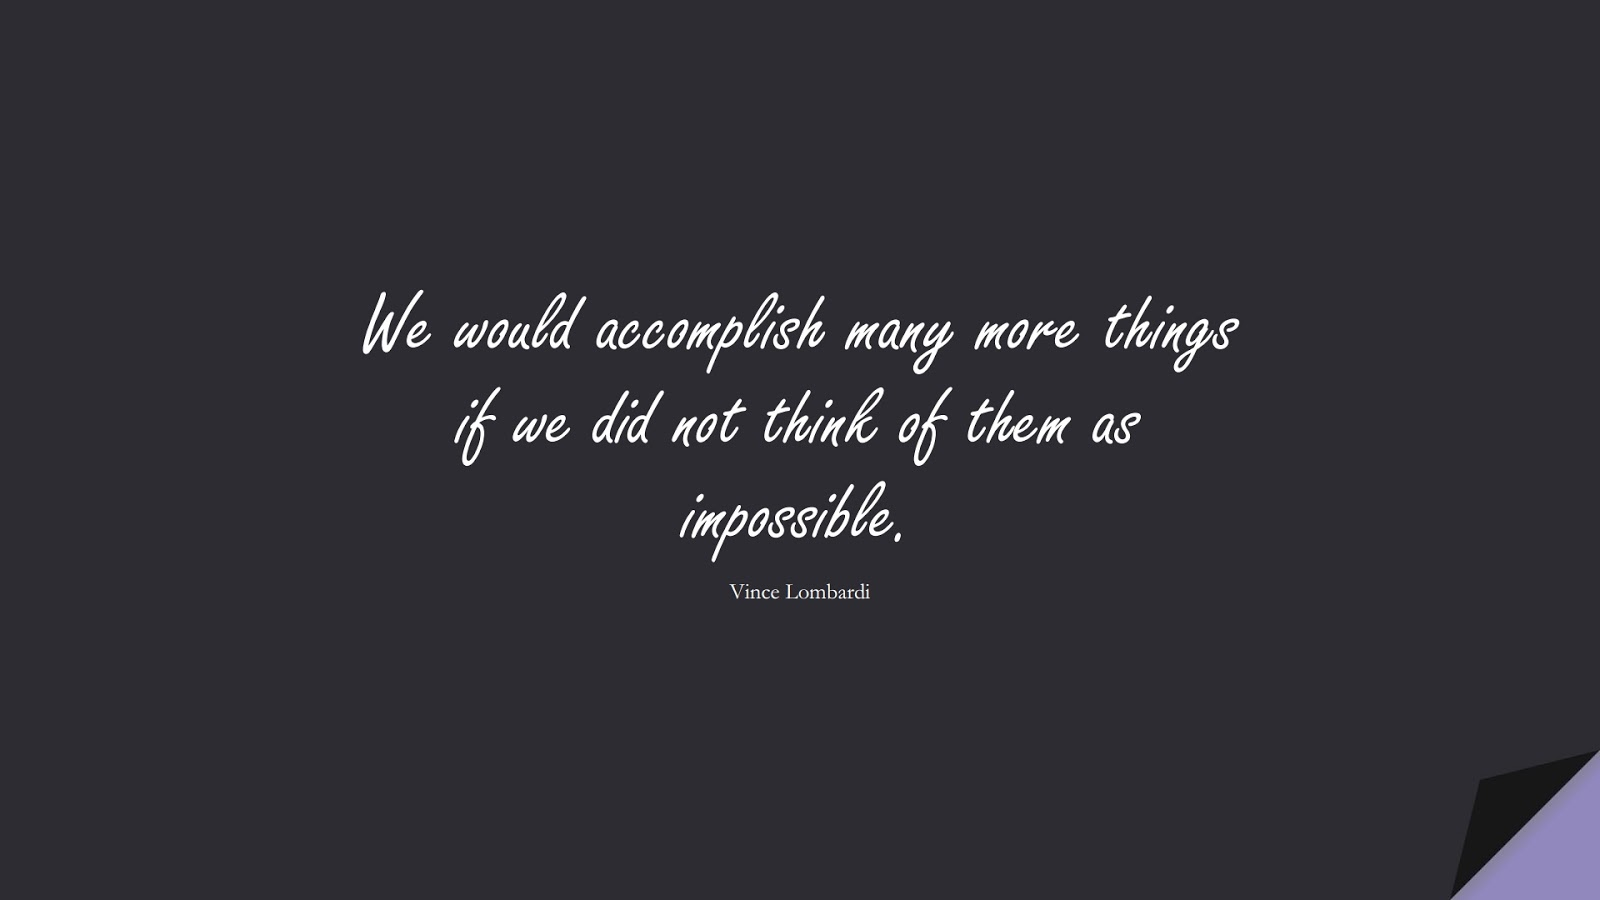 We would accomplish many more things if we did not think of them as impossible. (Vince Lombardi);  #PositiveQuotes